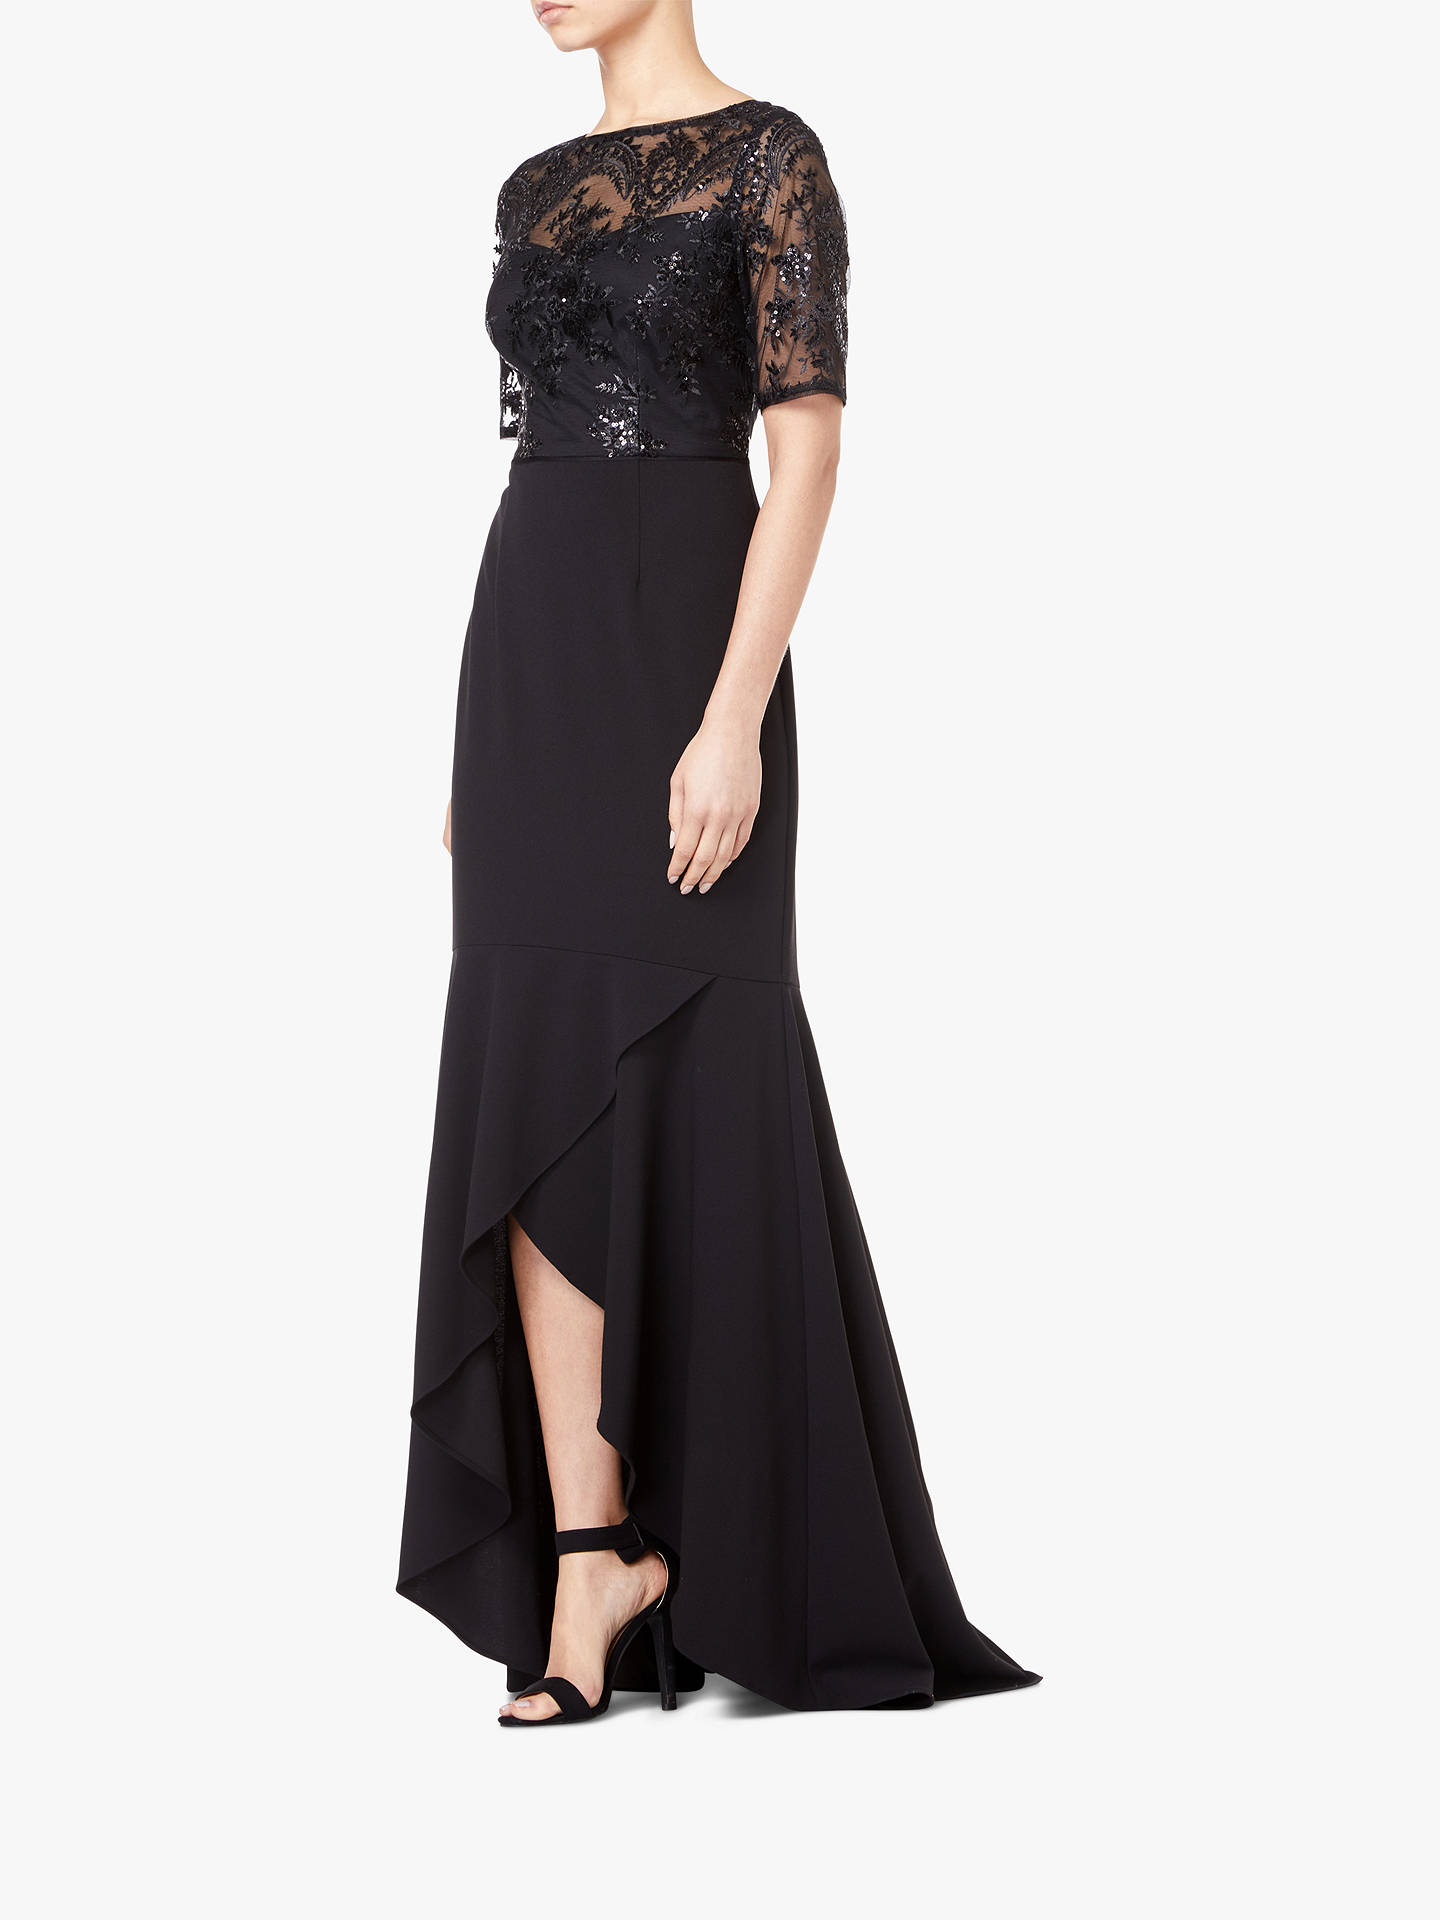 704ea8a7080 Buy Adrianna Papell High Low Sequin Dress, Black, 8 Online at johnlewis.com  ...